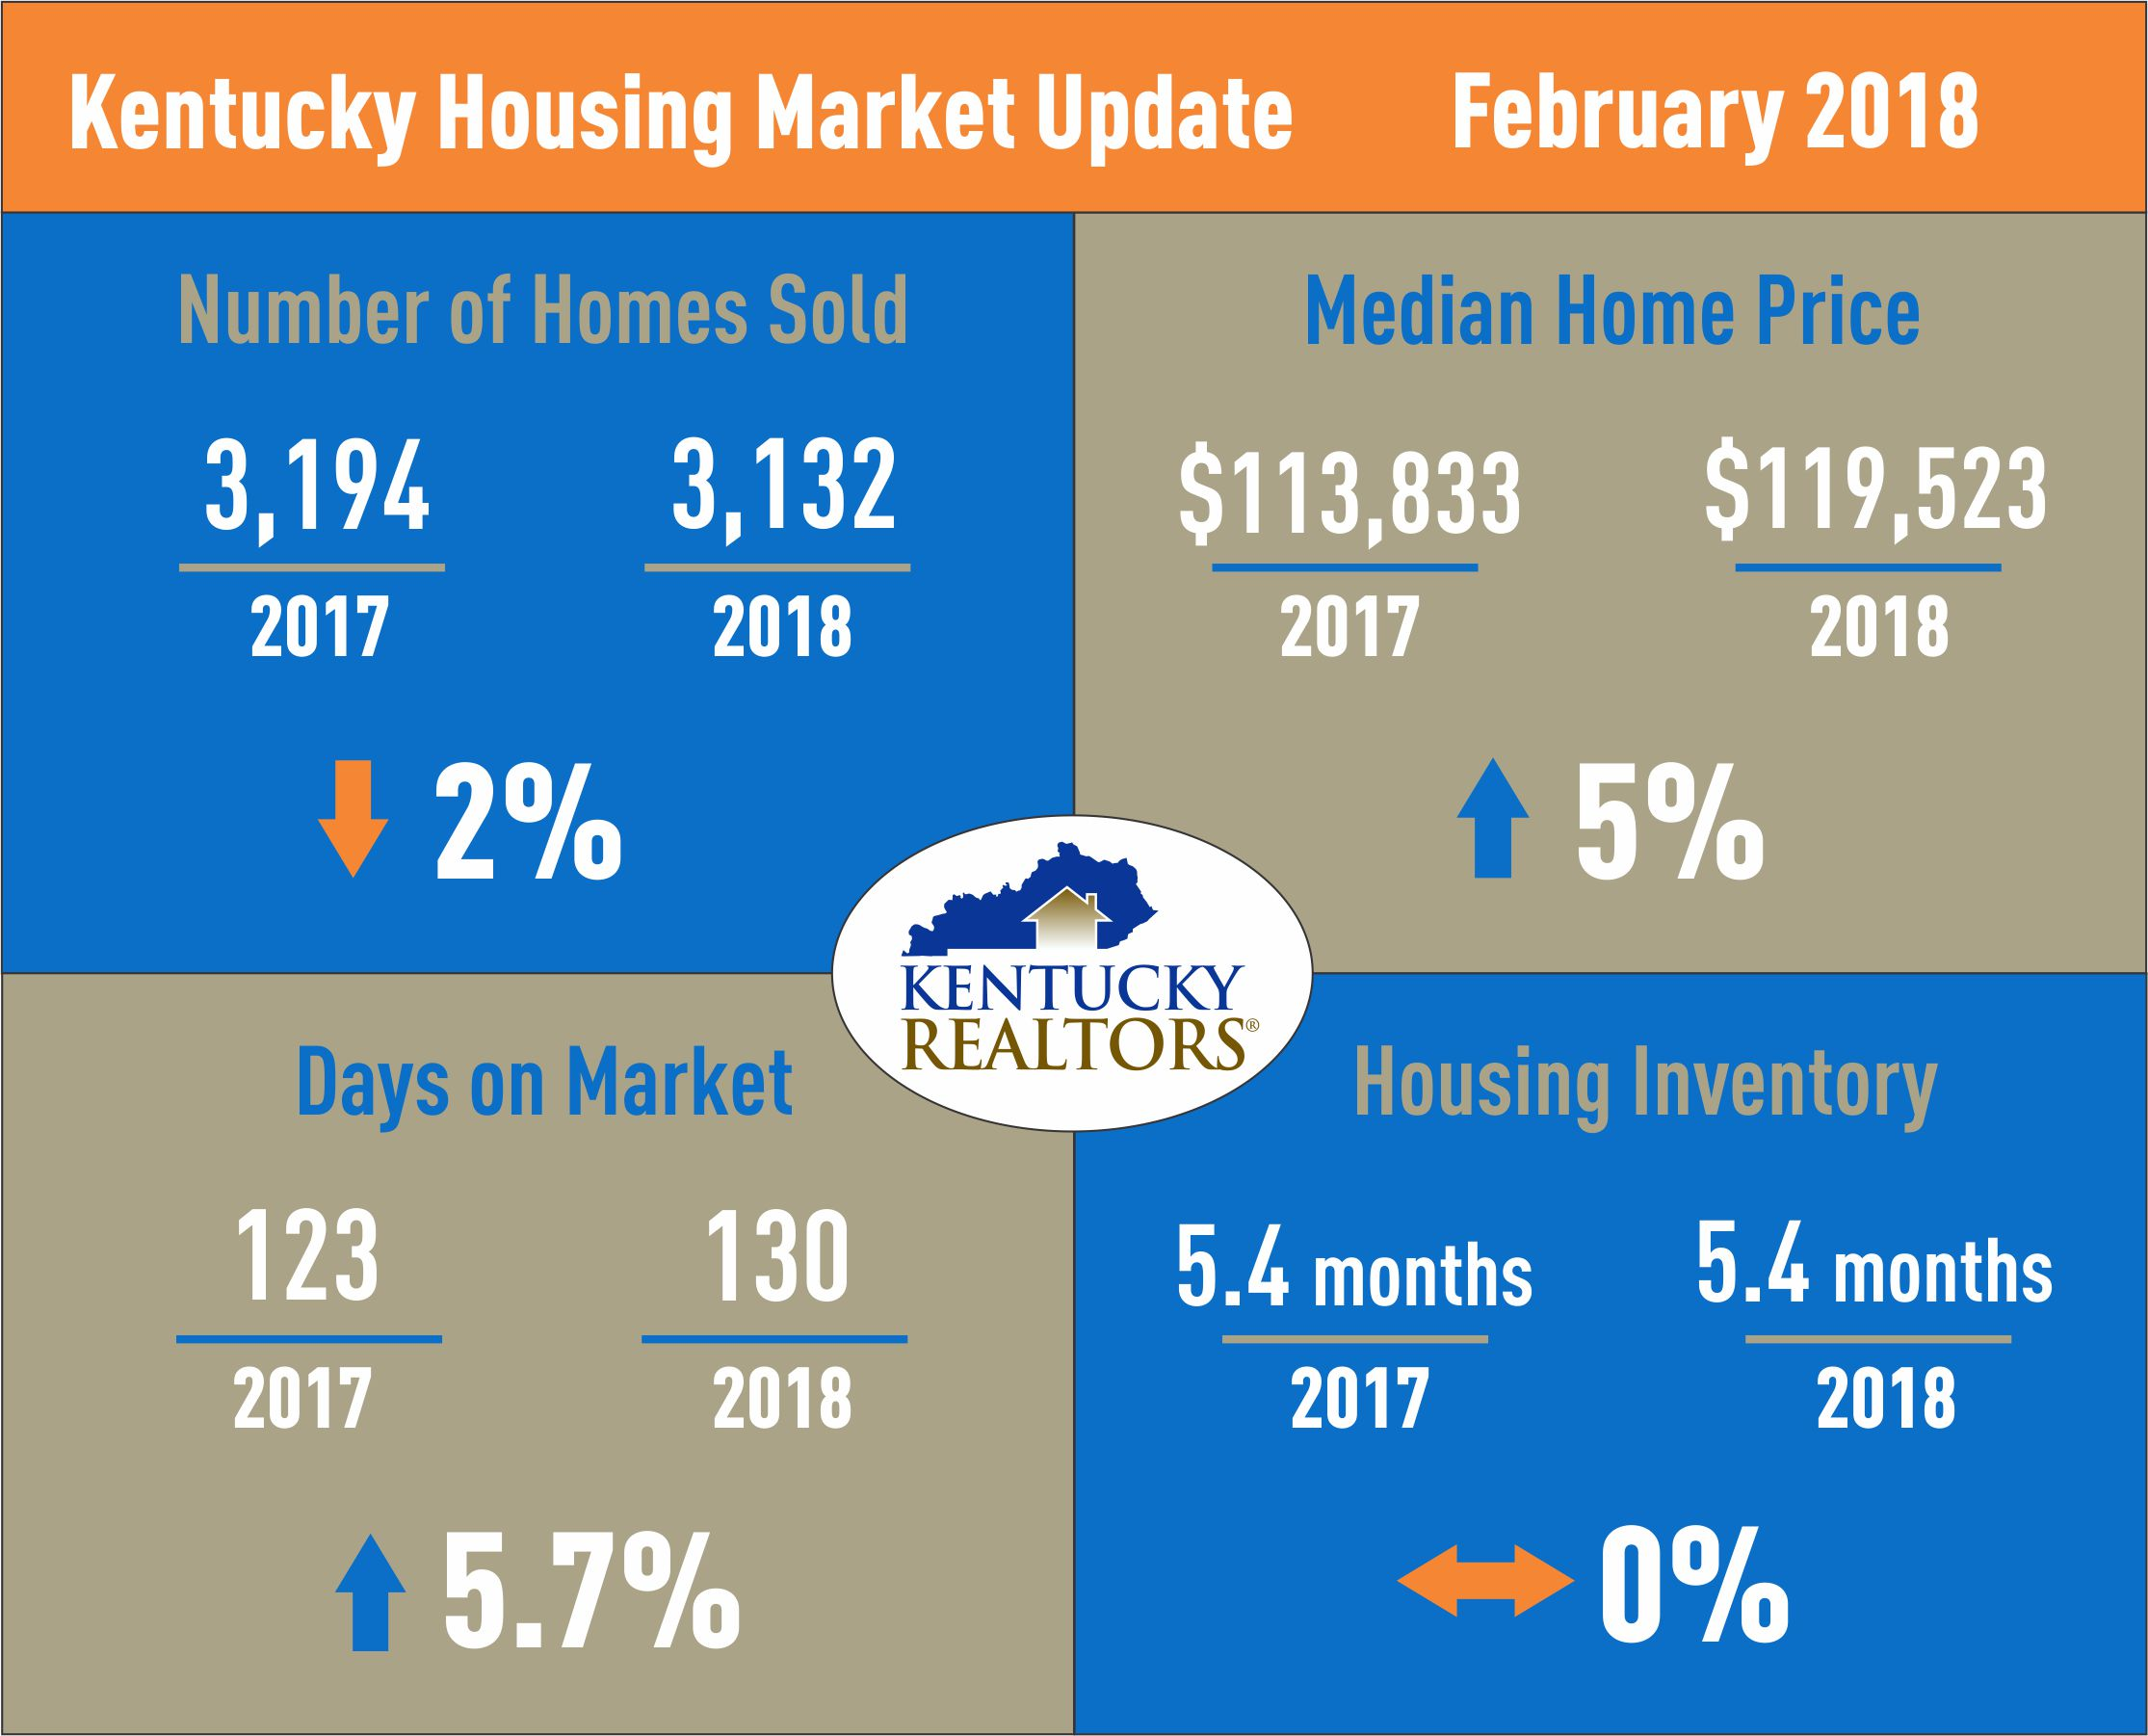 Kentucky Housing Market Update February 2018